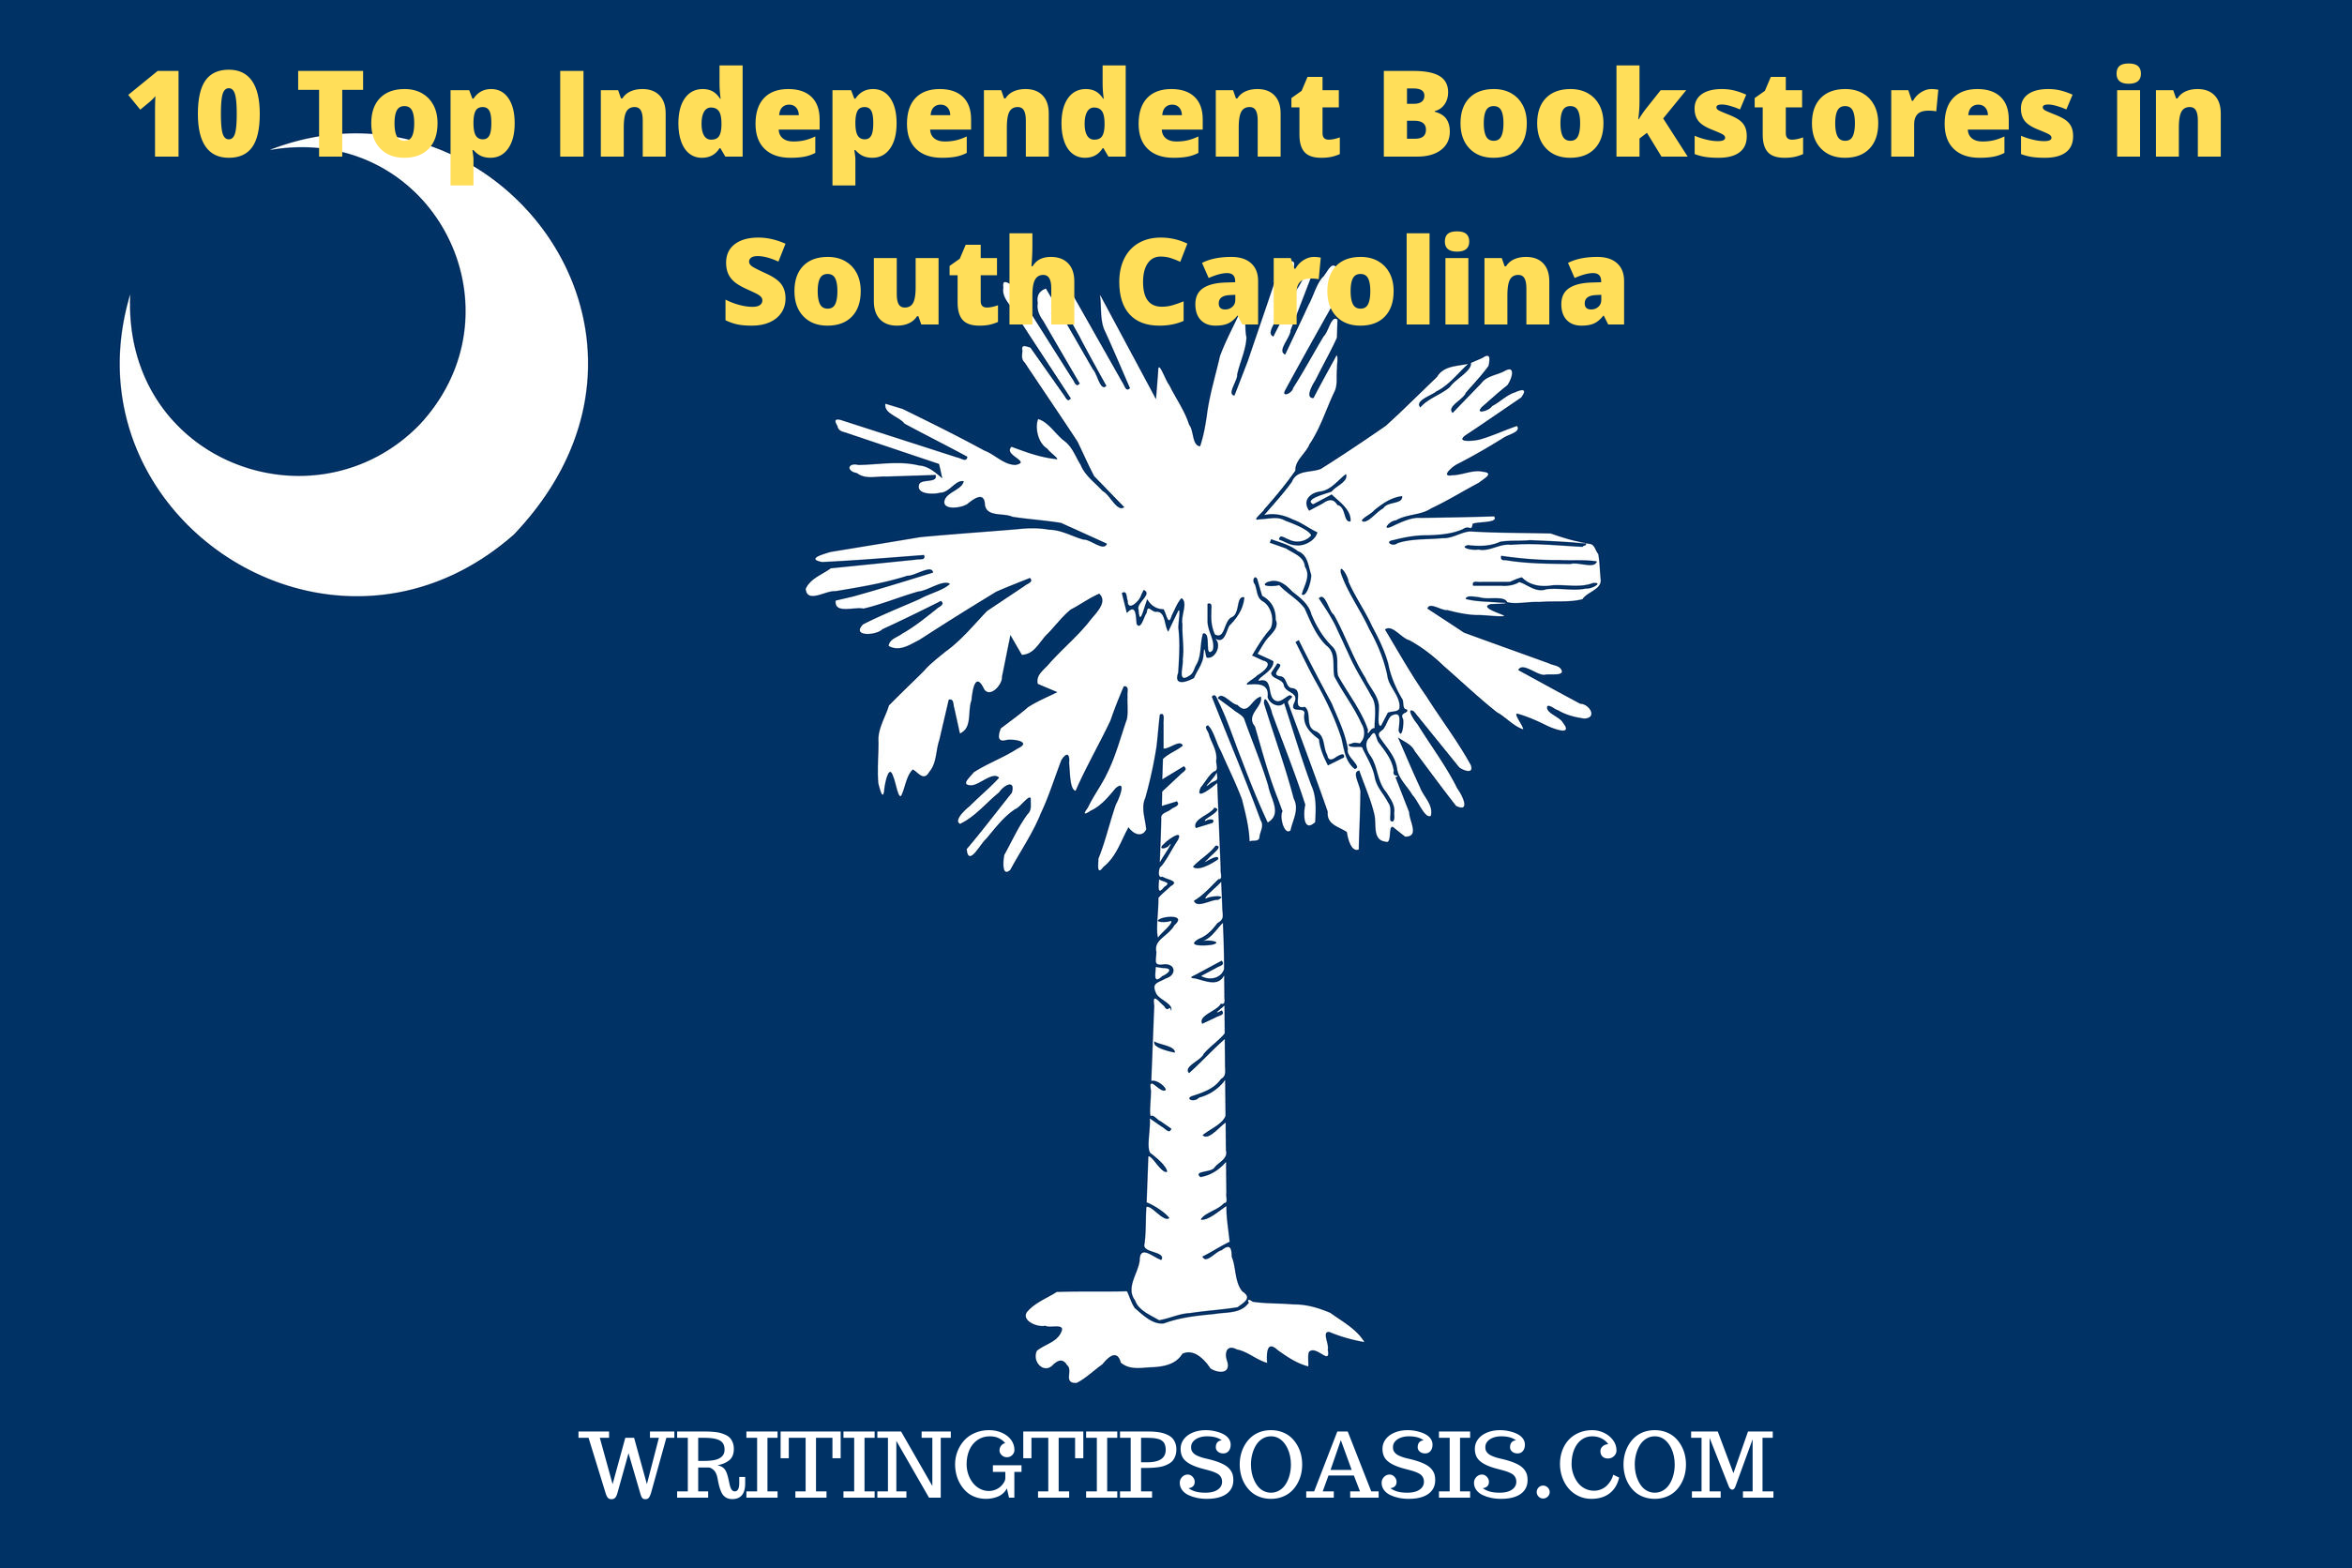 Independent Bookstores in South Carolina